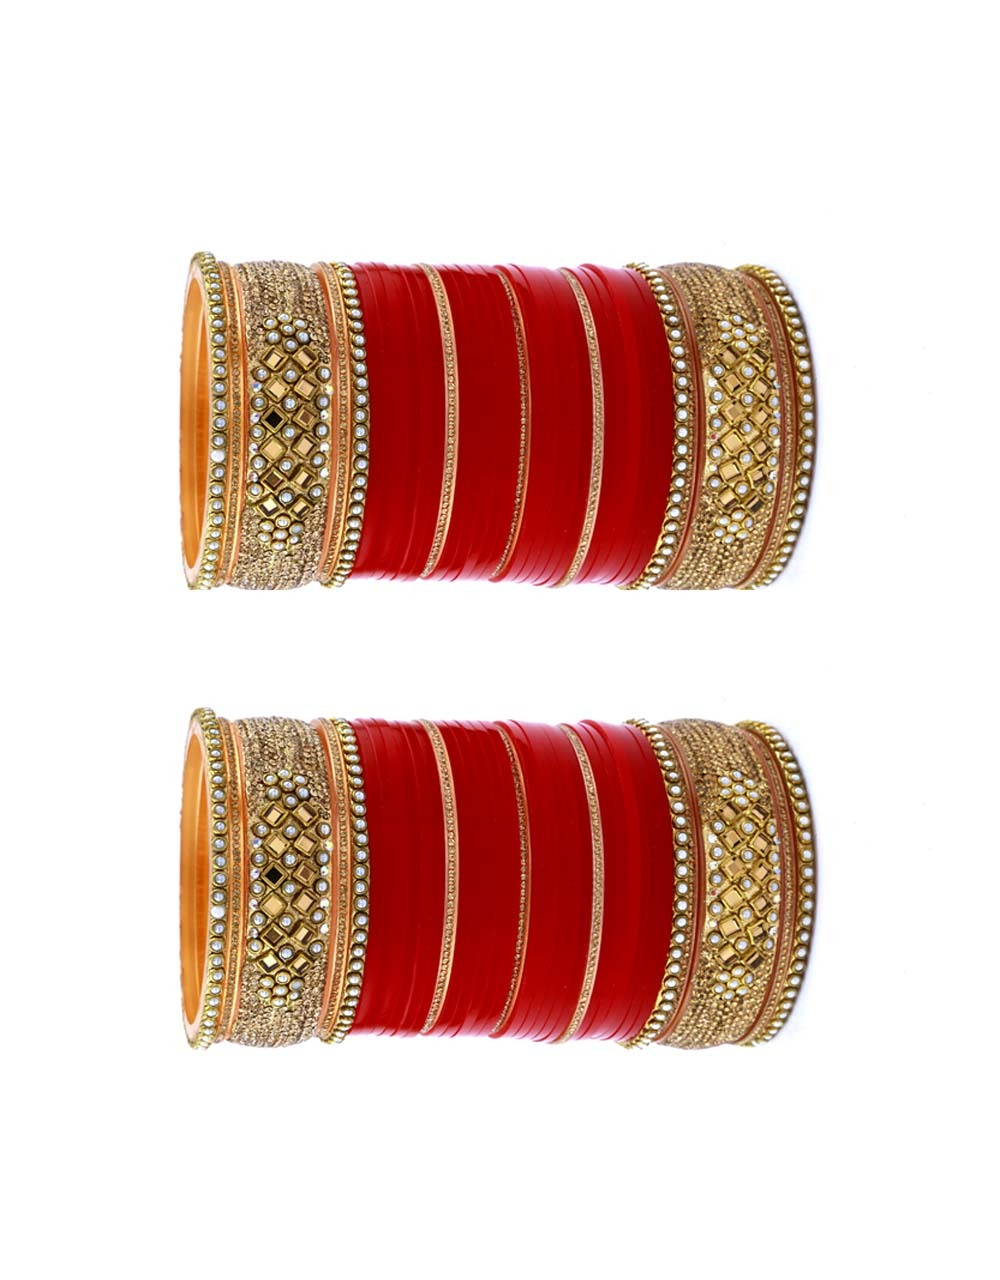 Red Colour Fancy Punjabi Chura Set for Women Styled with Stones